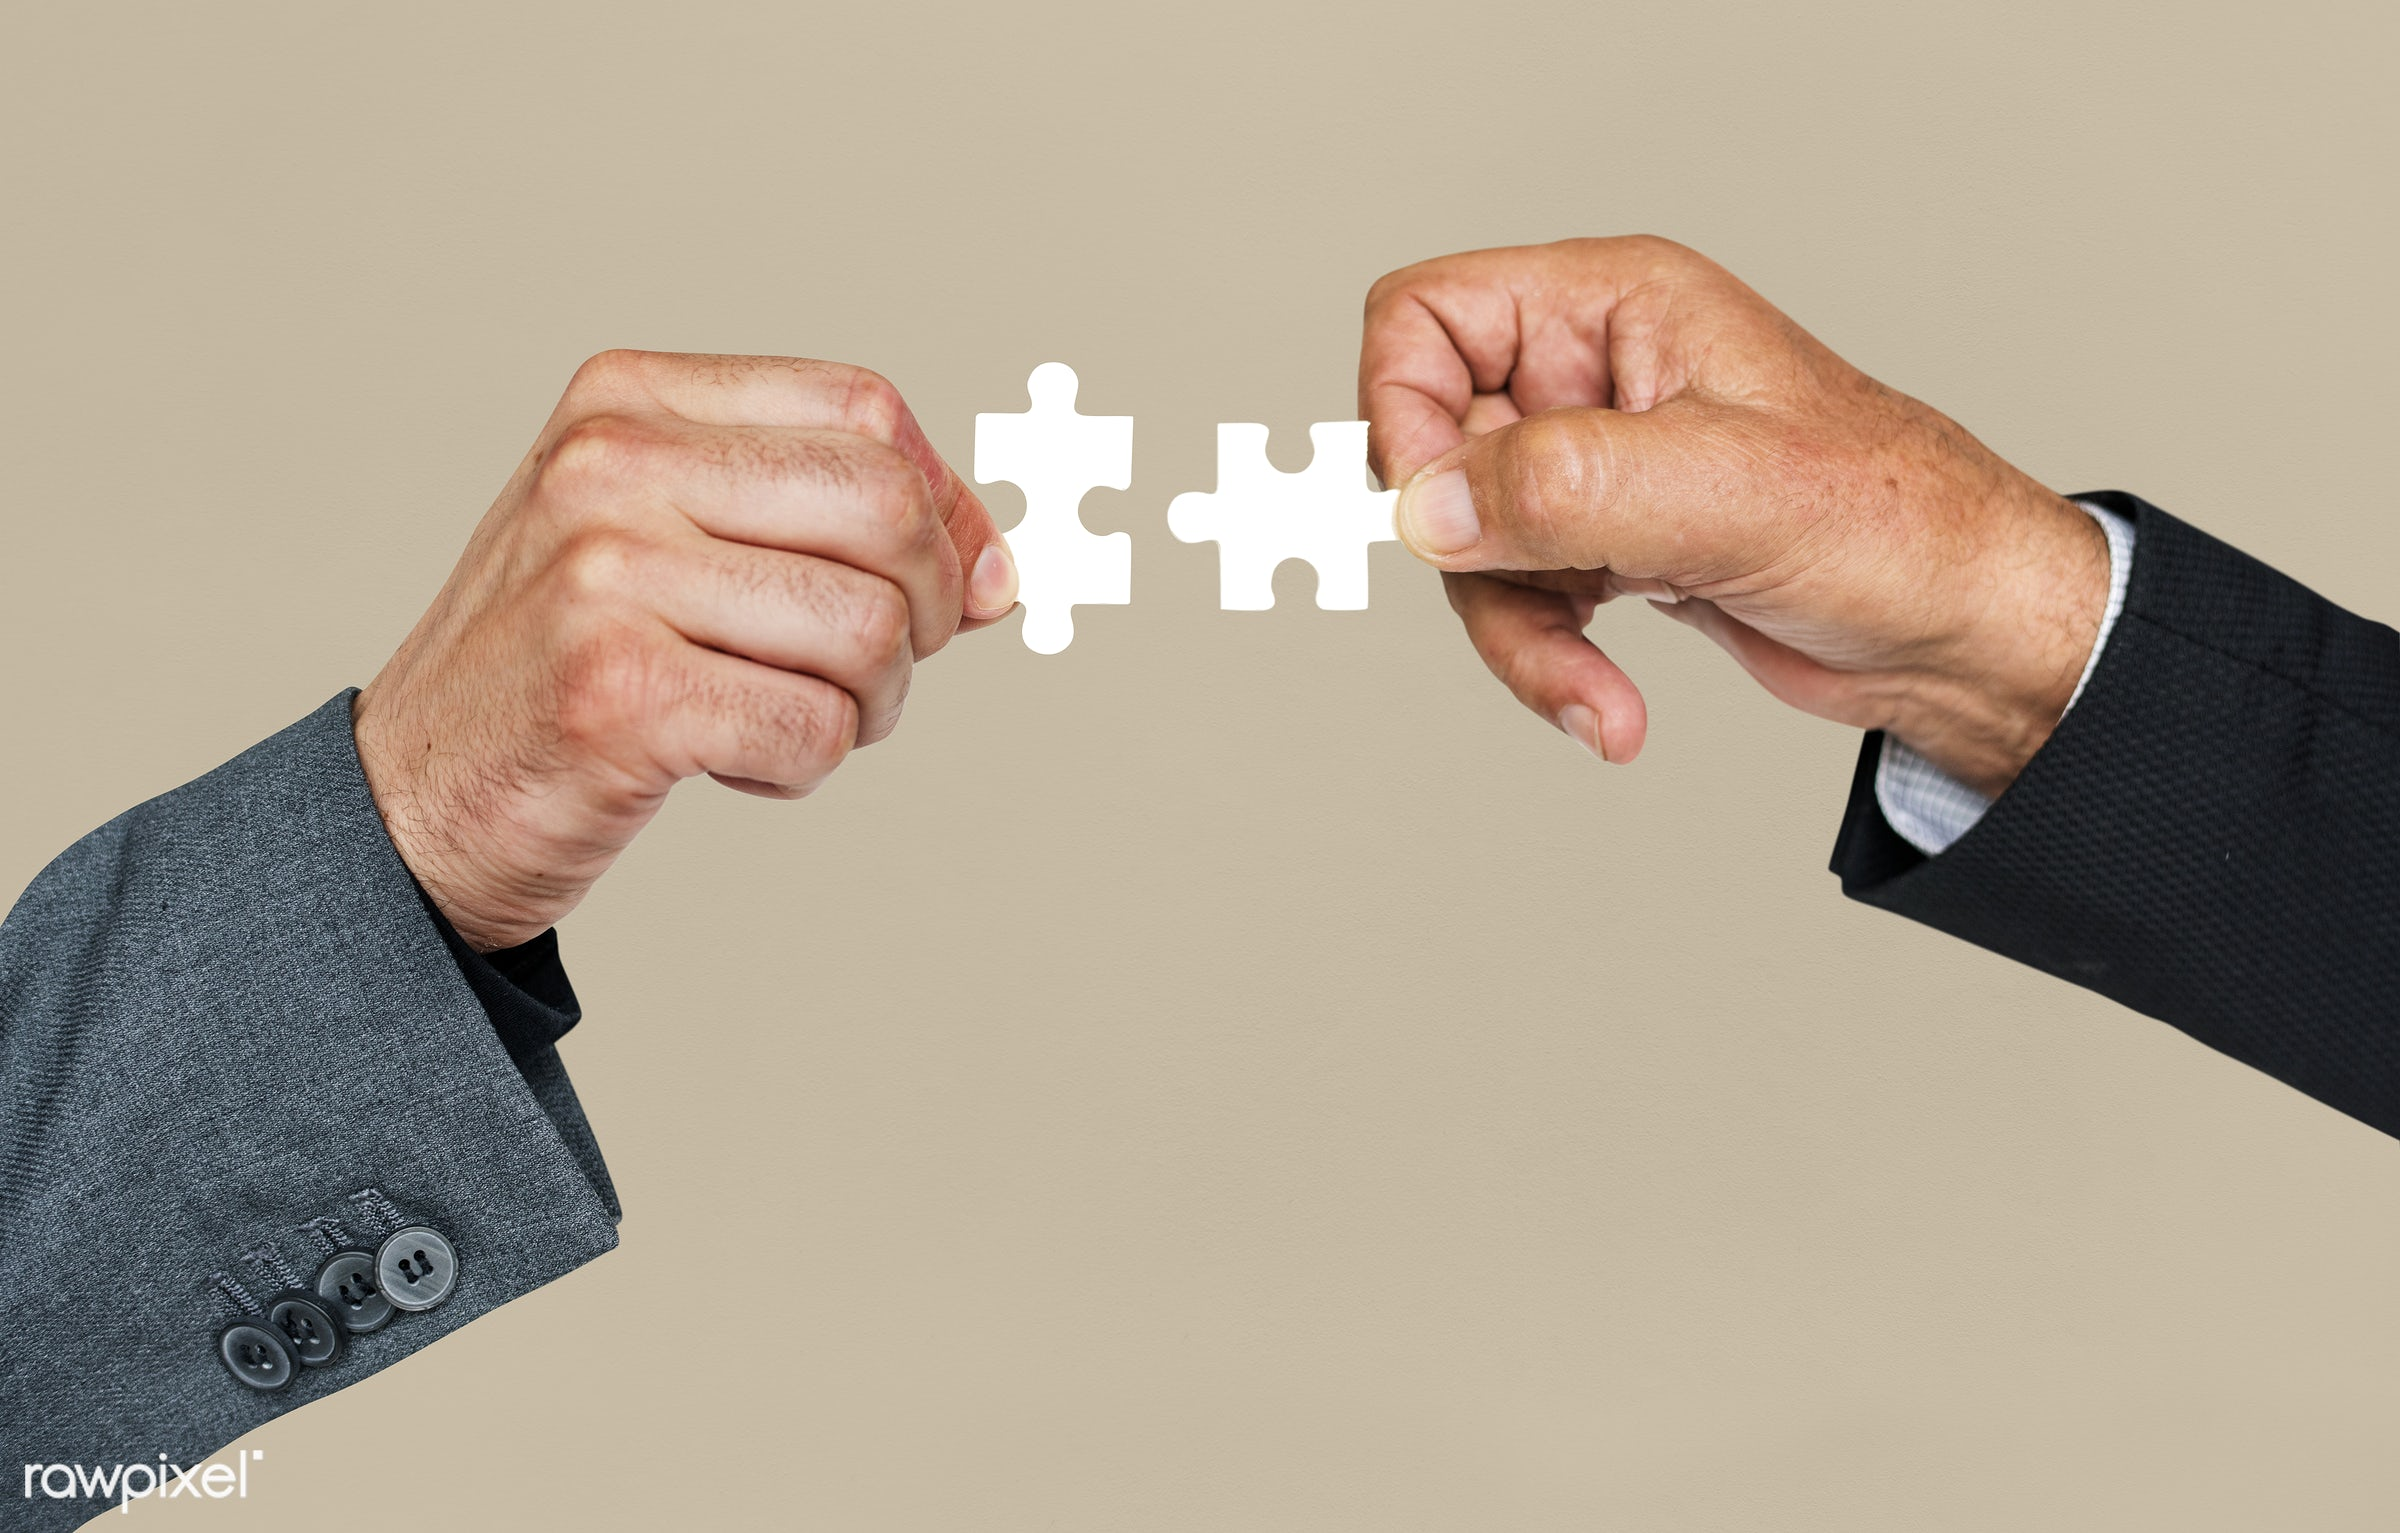 studio, jigsaw, jigsaw puzzle, holding, business, hand, corporate business, teamwork, action, cooperation, motion, move,...